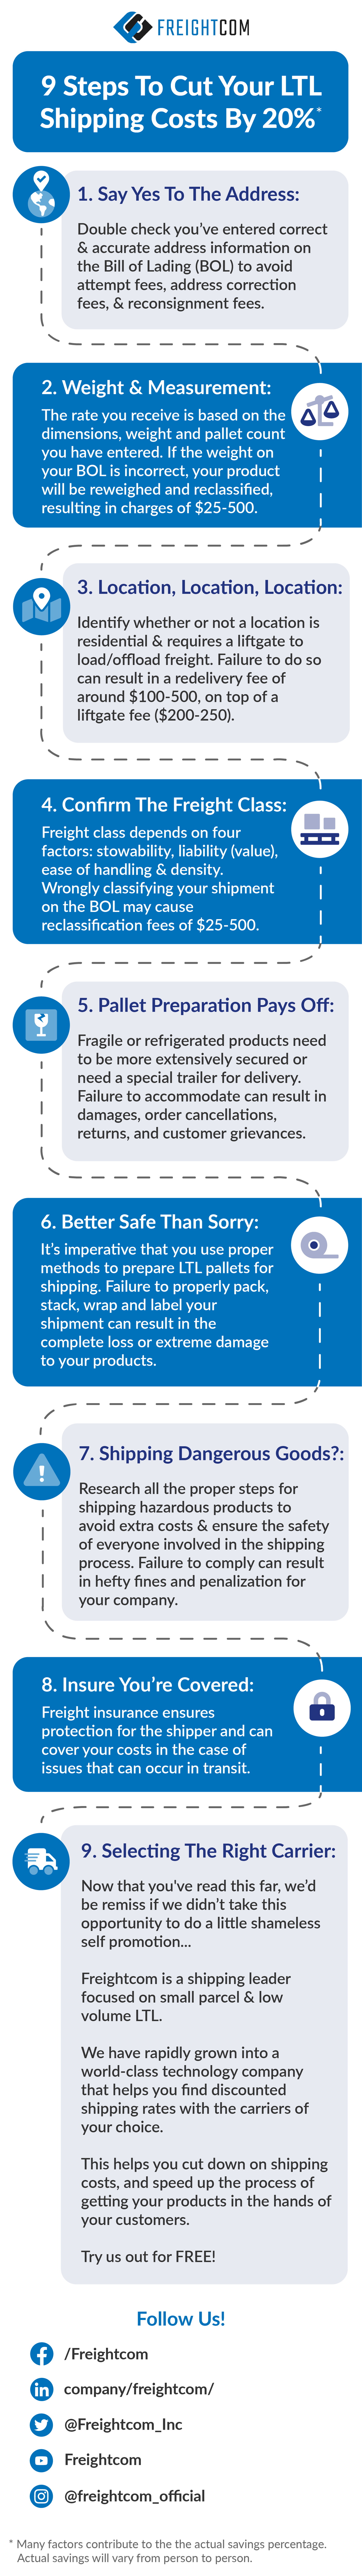 9 Steps To Cut Your Shipping Costs By 20%-02